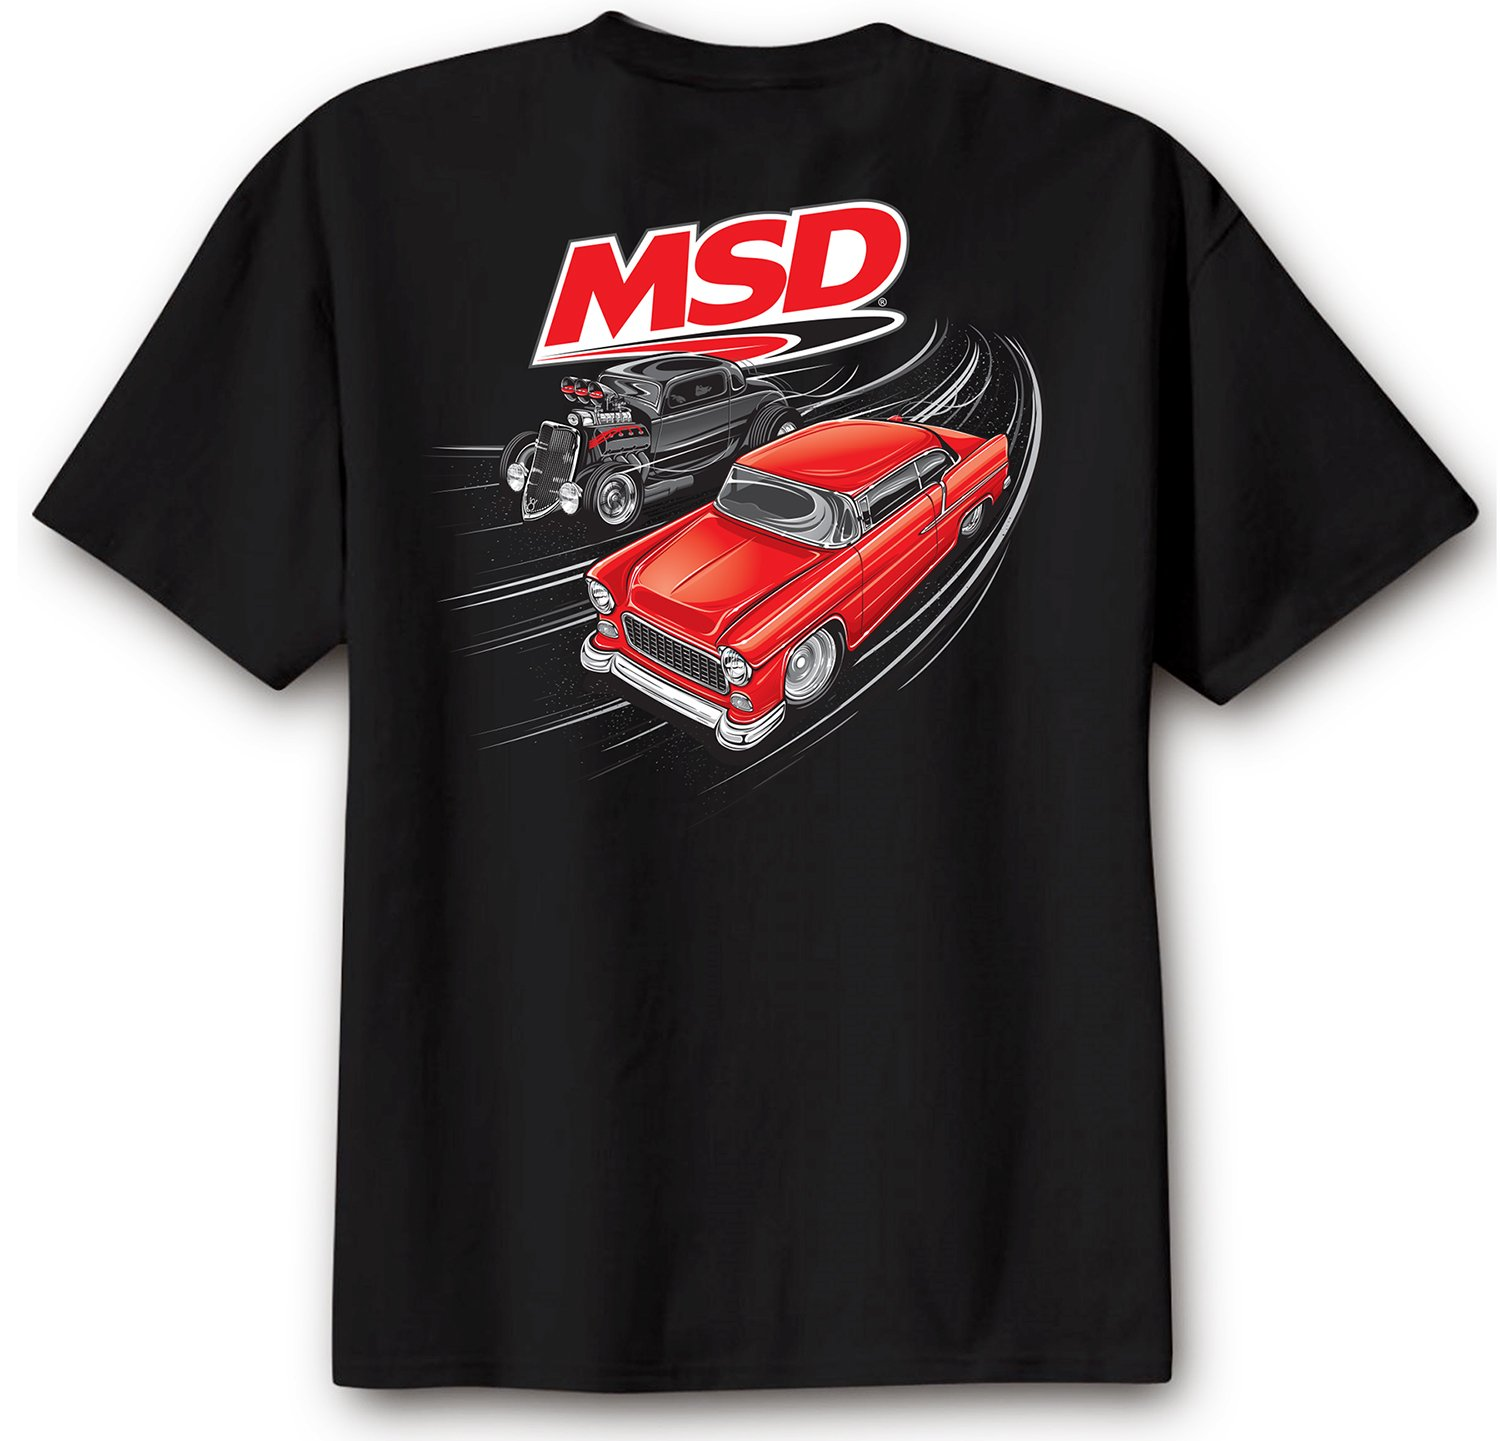 95136 - MSD Racer T-Shirt, Black, X-Large Image